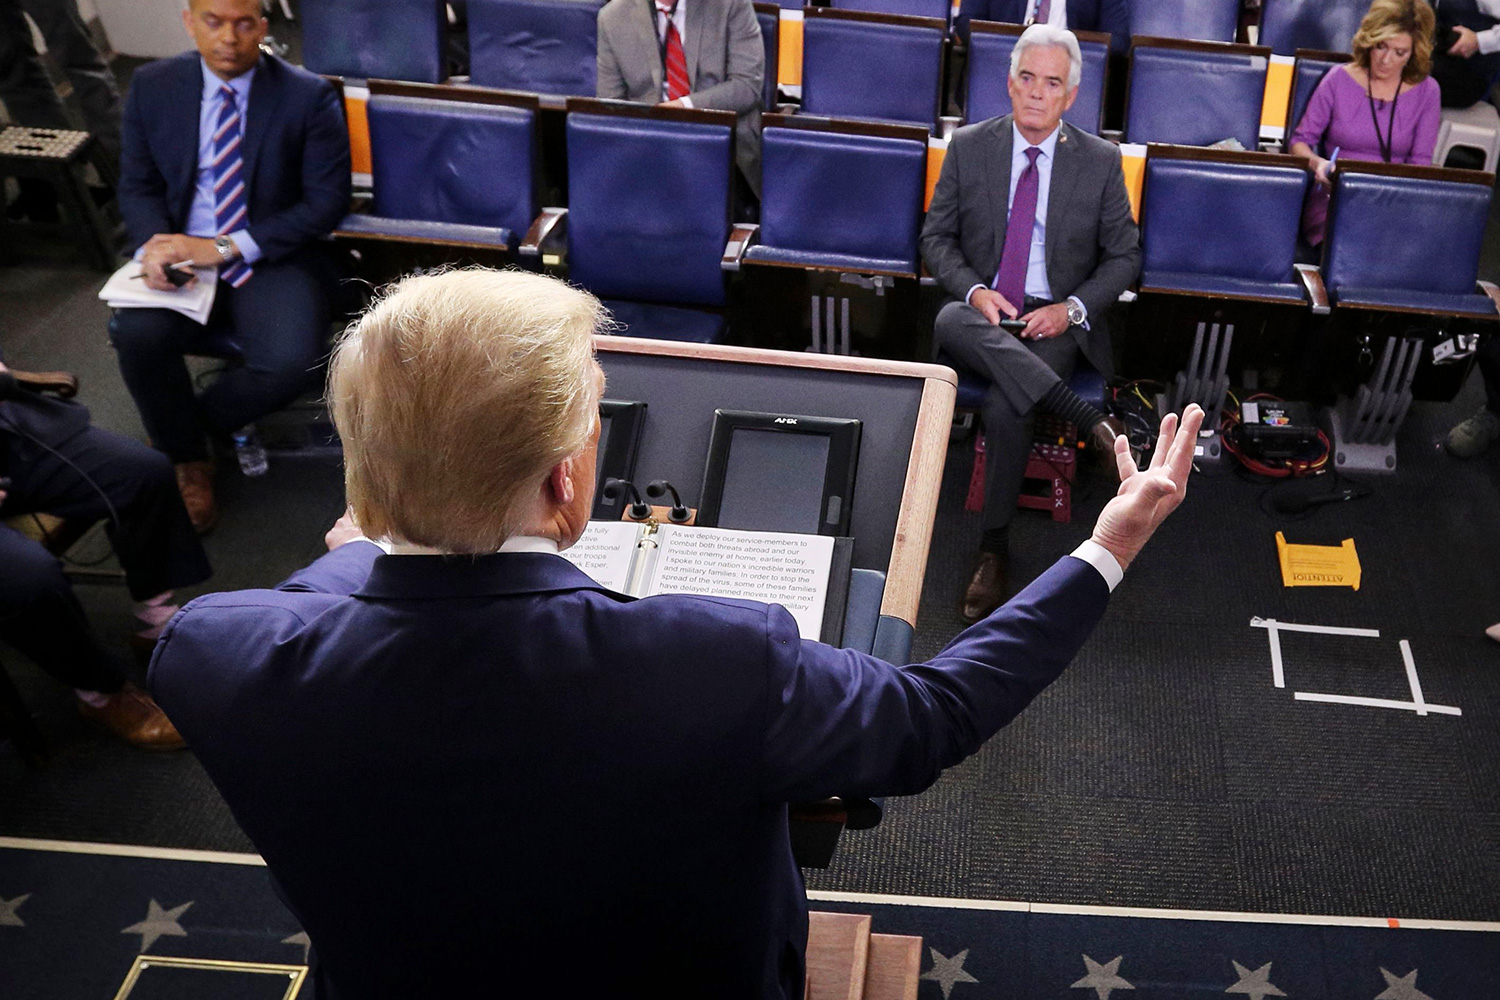 Donald J. Trump speaks during the daily briefing on the novel coronavirus, COVID-19, in the Brady Press Briefing Room of the White House in Washington, DC.